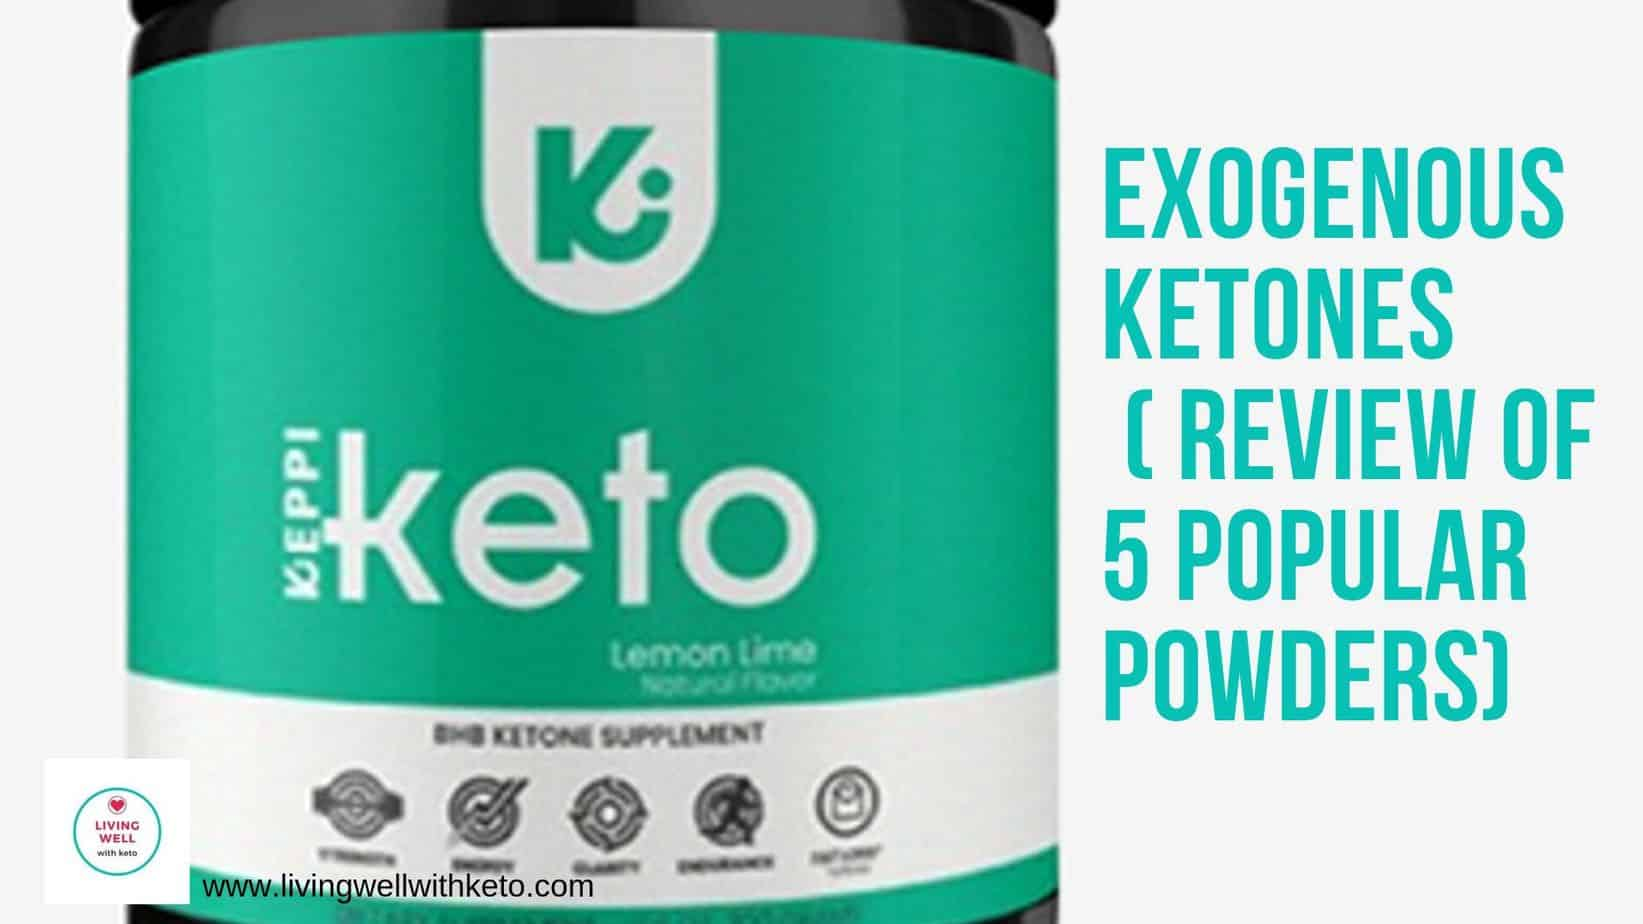 exogenous ketones ( review of 5 popular powders)